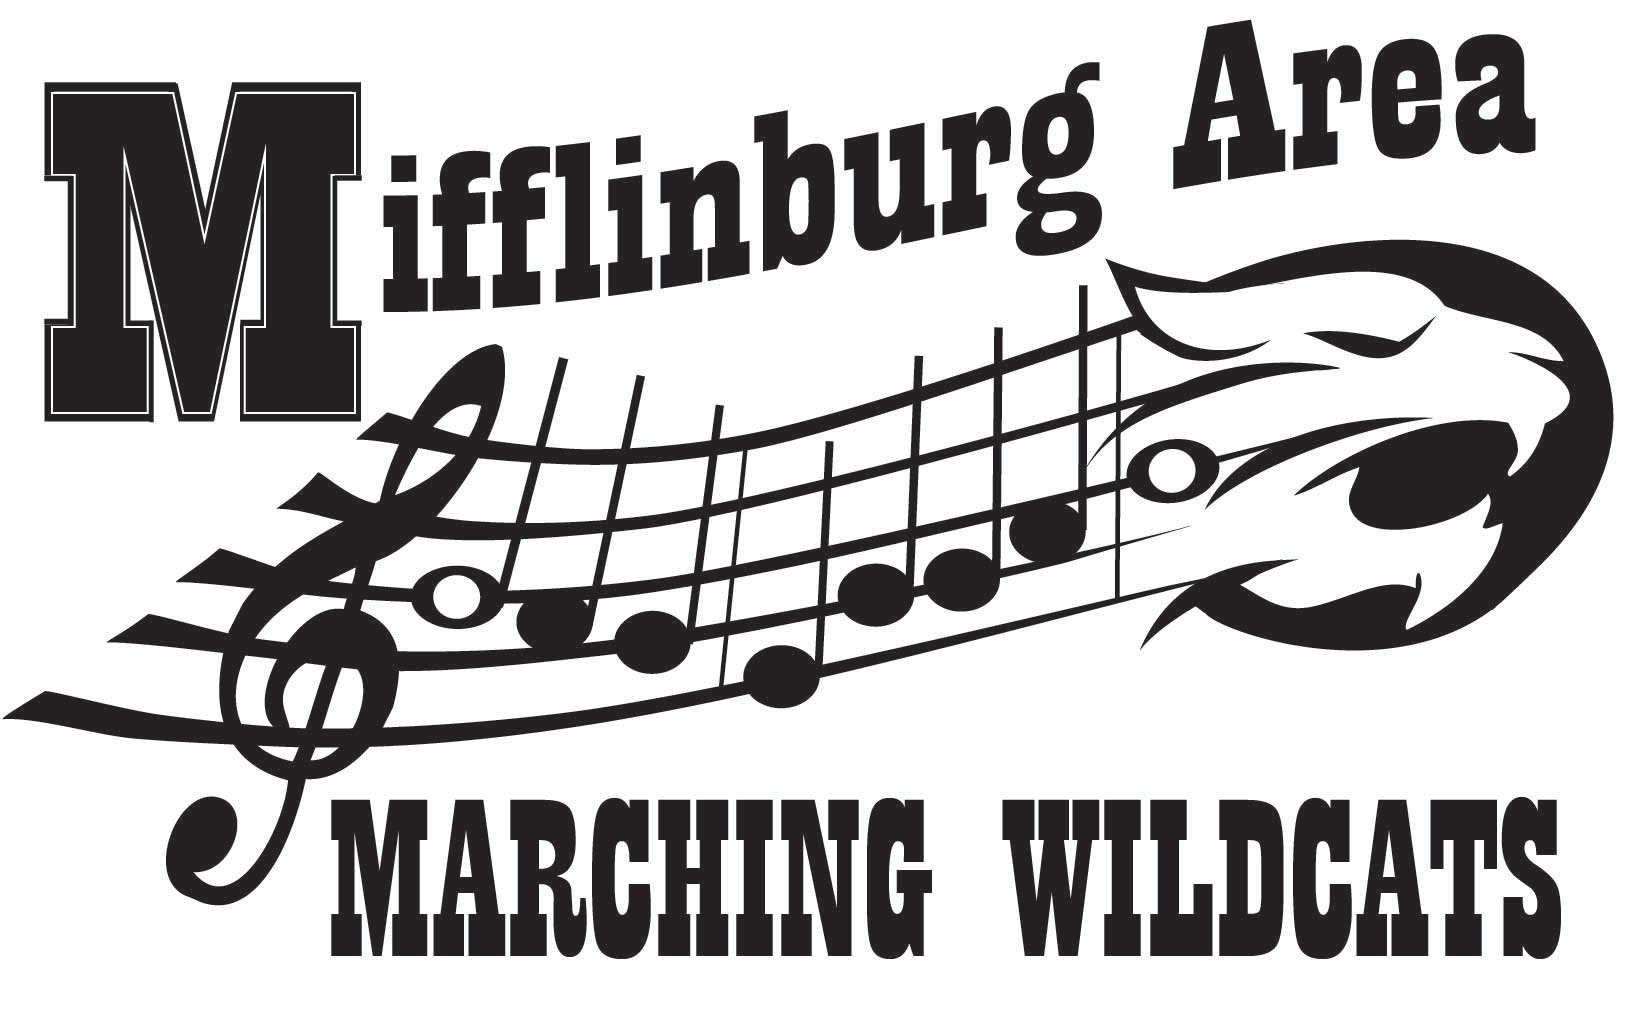 Marching Wildcats logo_final